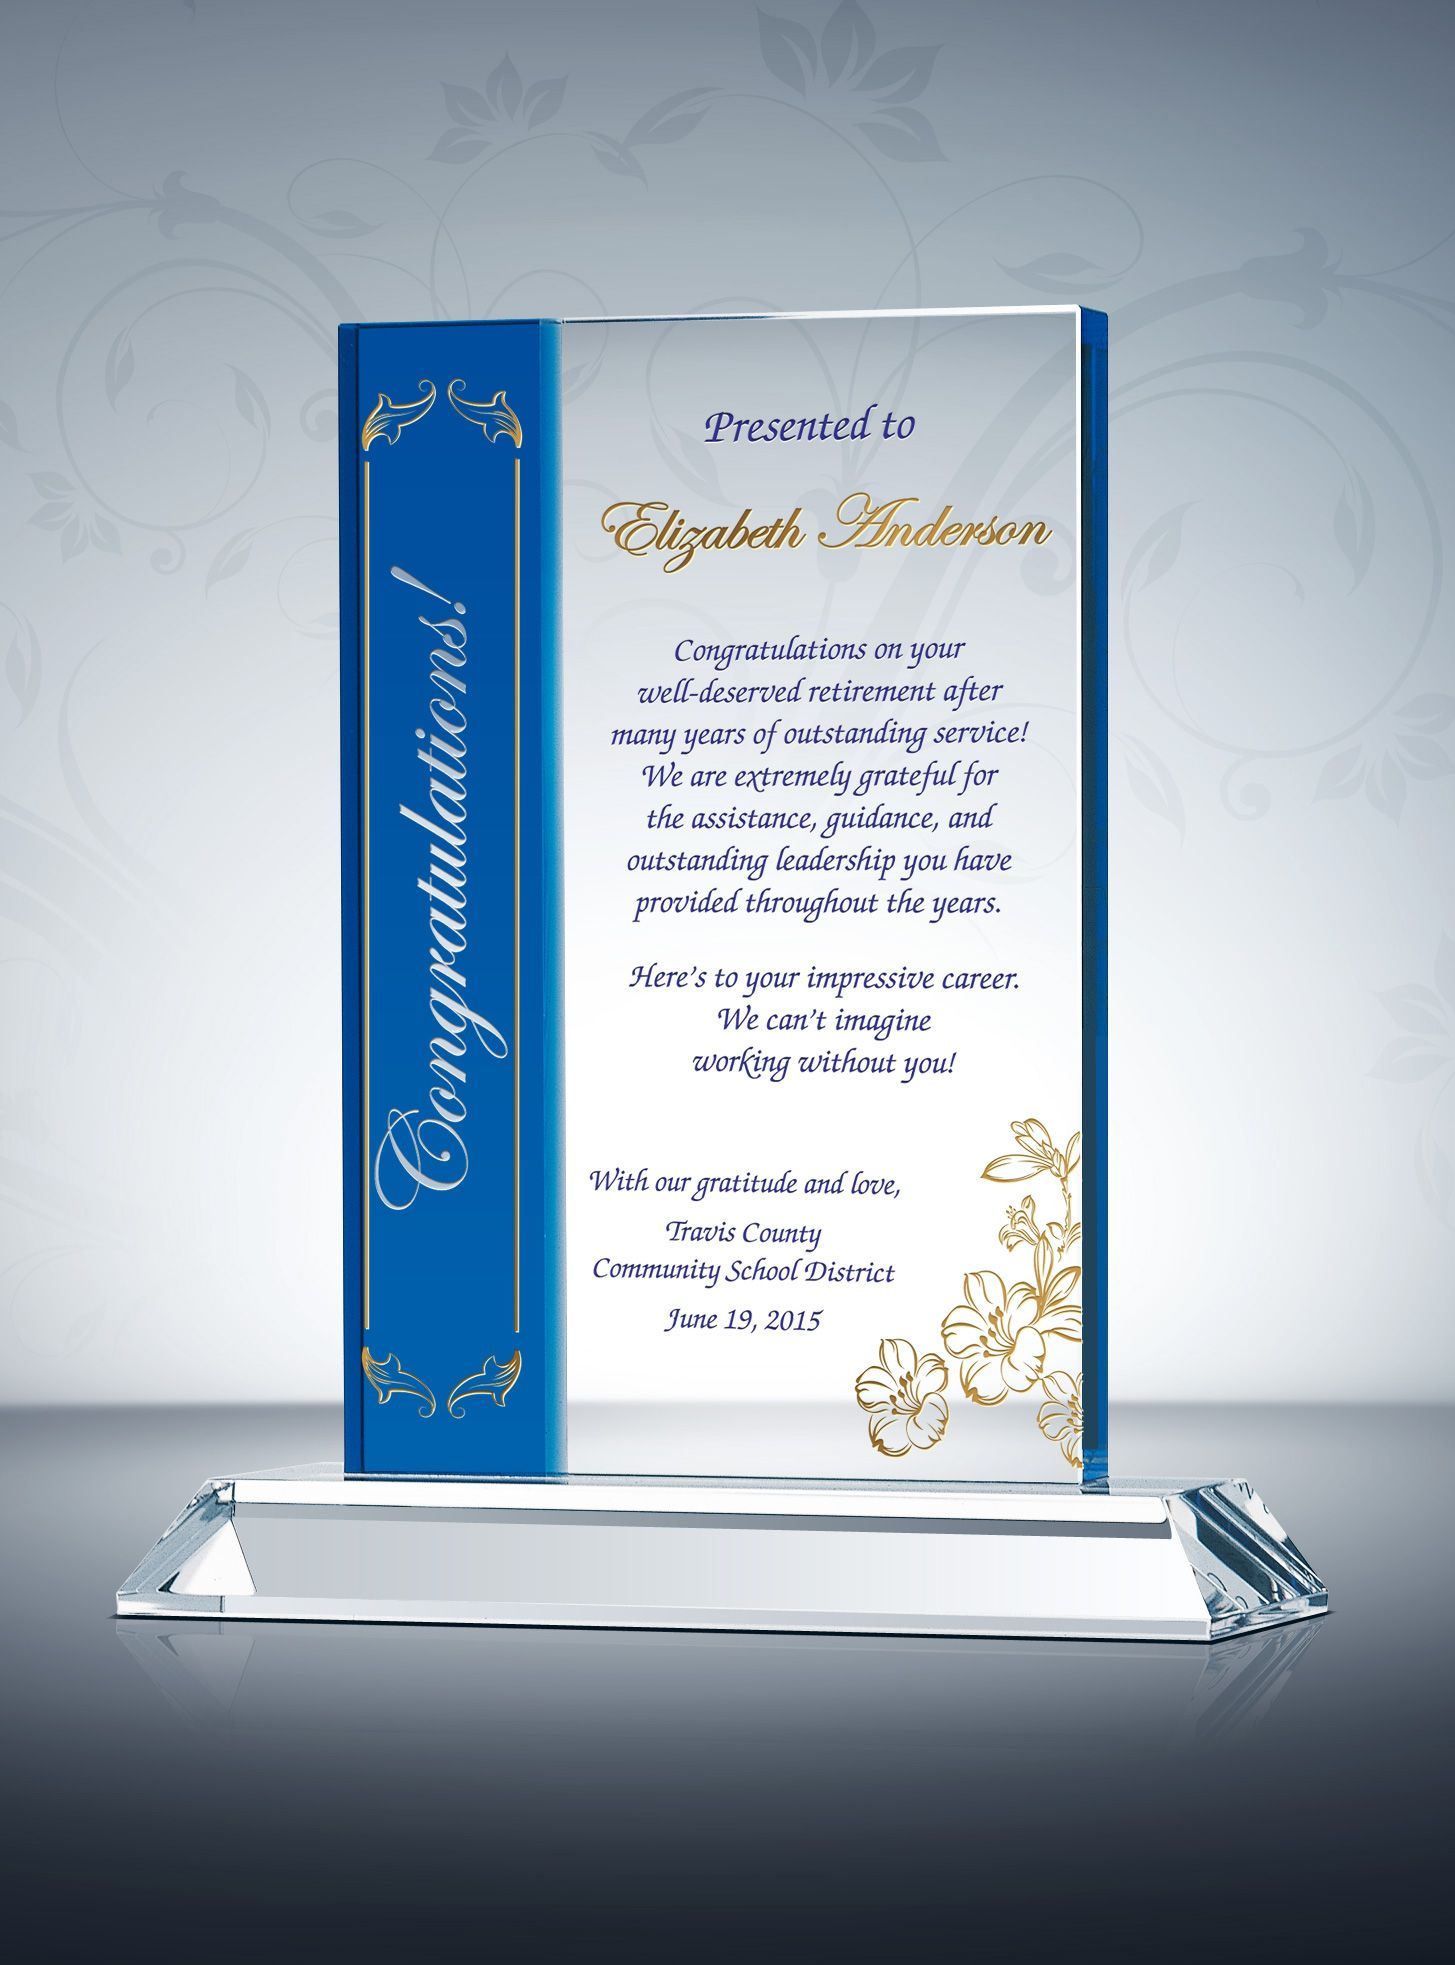 Sample Employee Appreciation Messages For Years Of Service Awards Appreciation Message Employee Appreciation Messages Employee Appreciation Quotes